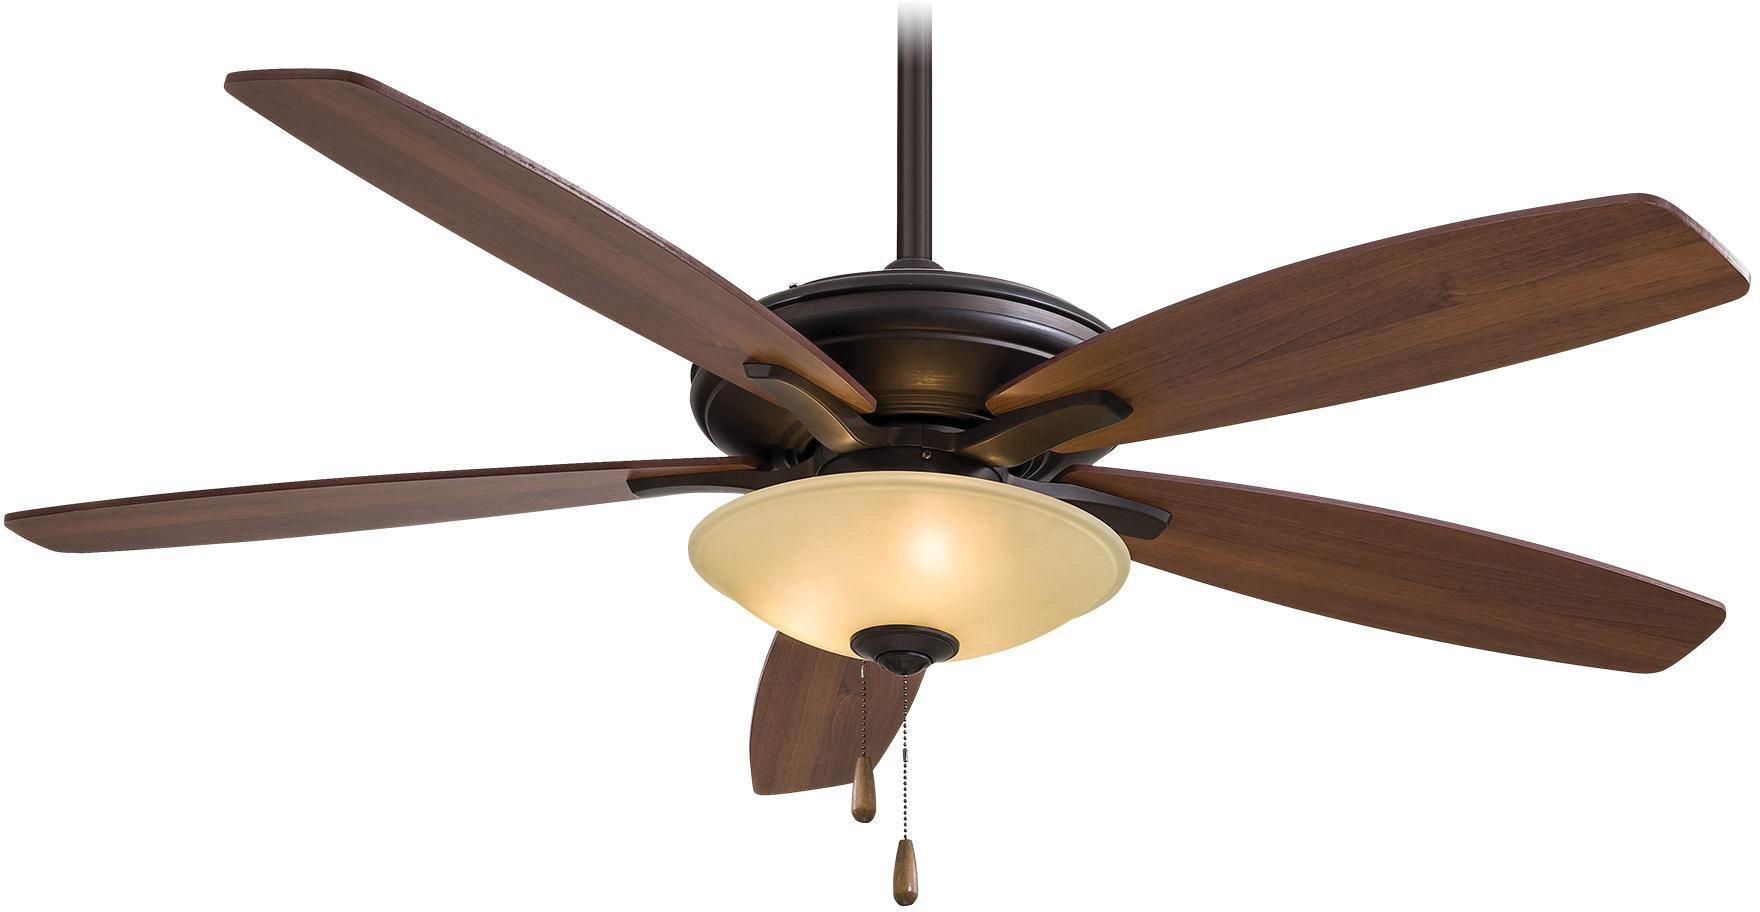 Minka-Aire F522-ORB/TS, Mojo,  52'' Ceiling Fan with Light,  Oil-Rubbed Bronze by Minka-Aire